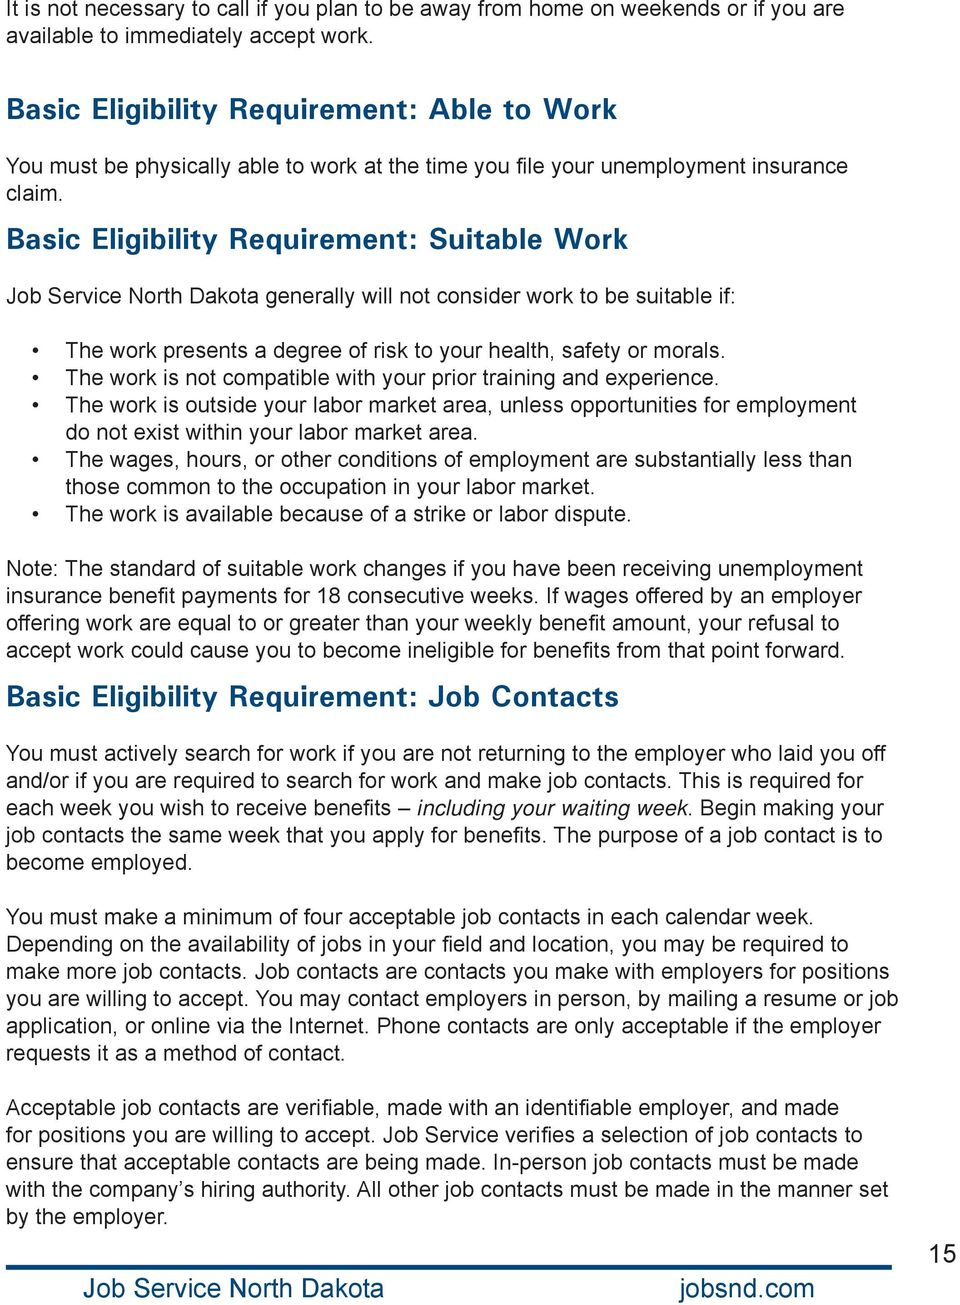 Basic Eligibility Requirement: Suitable Work generally will not consider work to be suitable if: The work presents a degree of risk to your health, safety or morals.